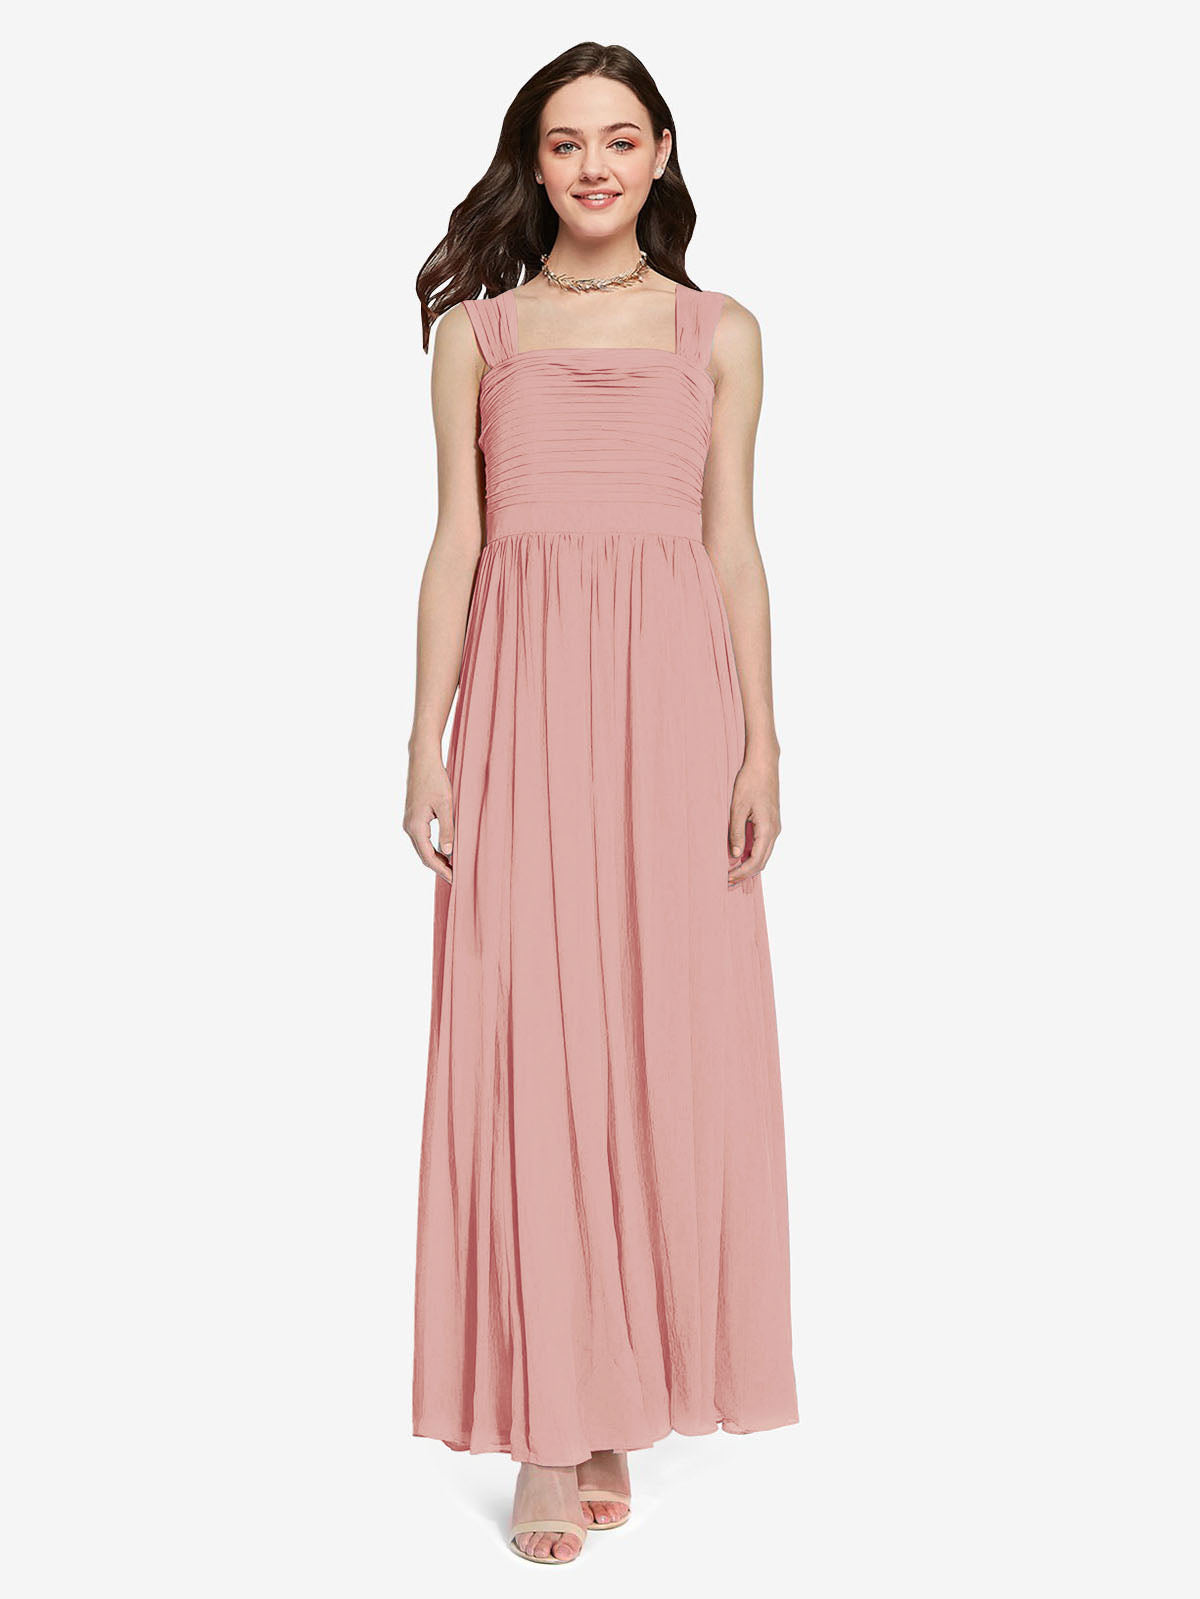 Long A-Line Square Sleeveless Bliss Chiffon Bridesmaid Dress Aldridge